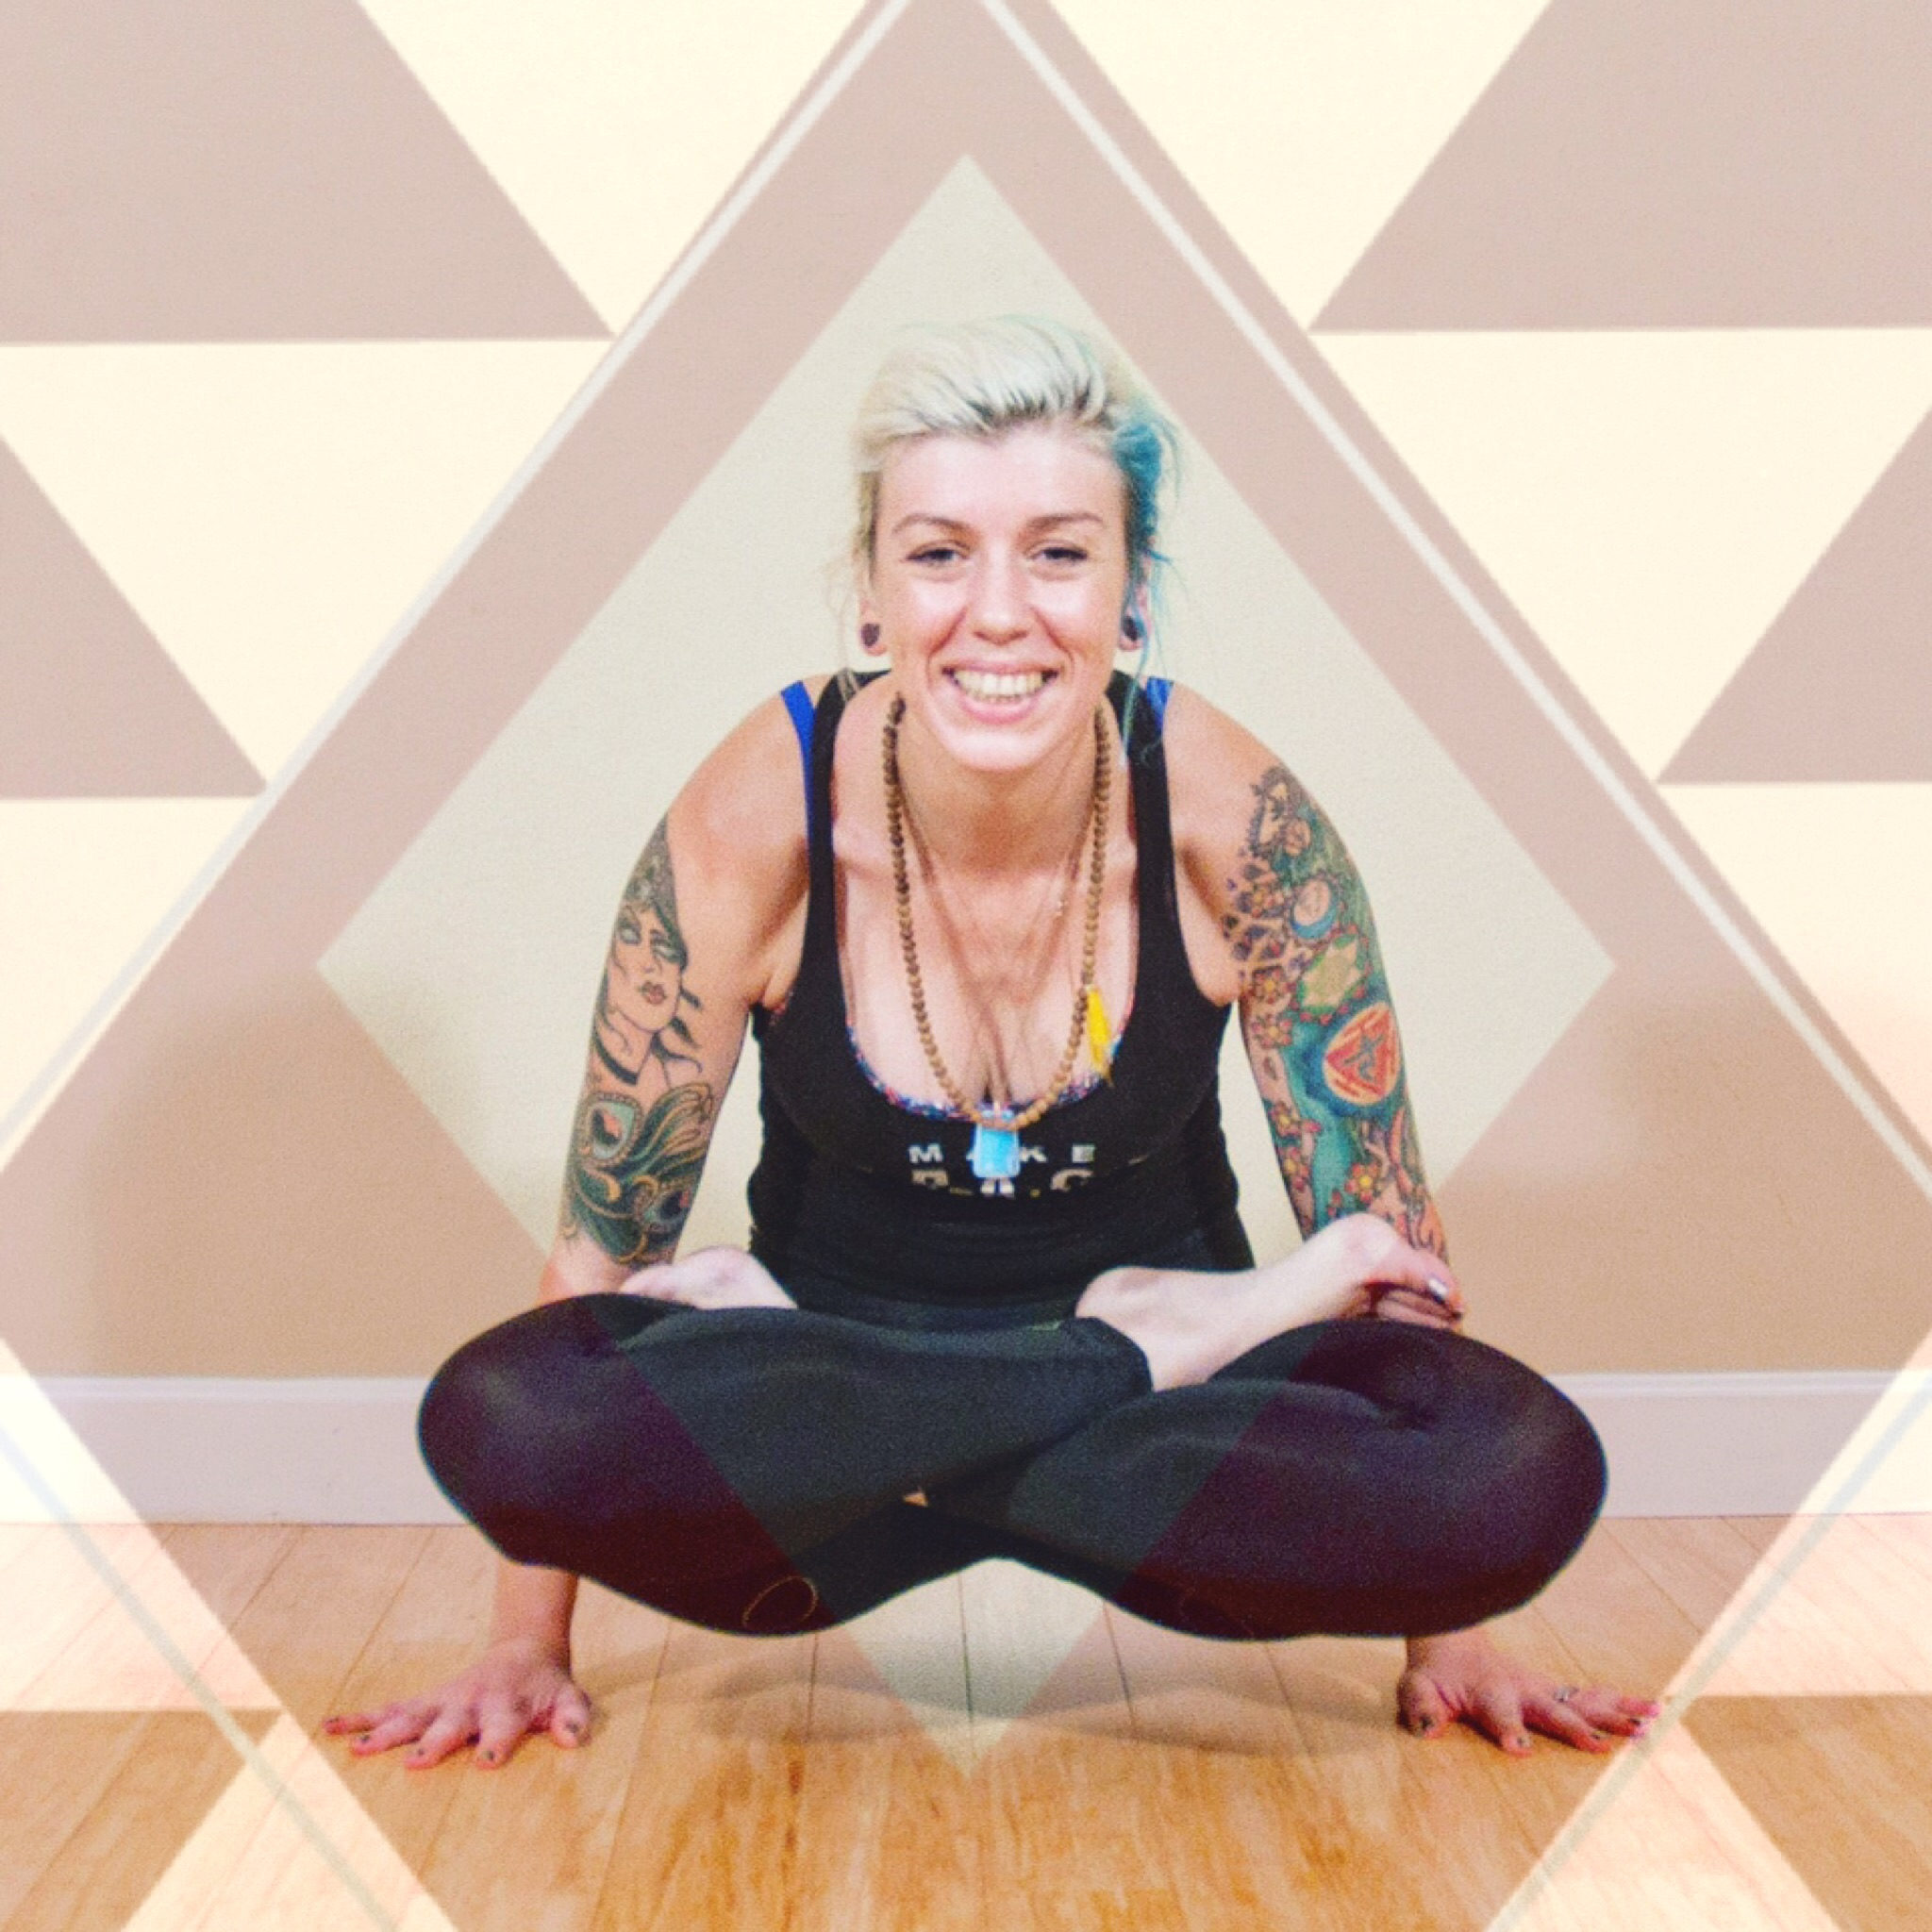 Irina Shlain-Witis    Irina's yoga teaching combines traditional yoga poses with new techniques designed to challenge your yoga practice, build stretch and increase flexibility.